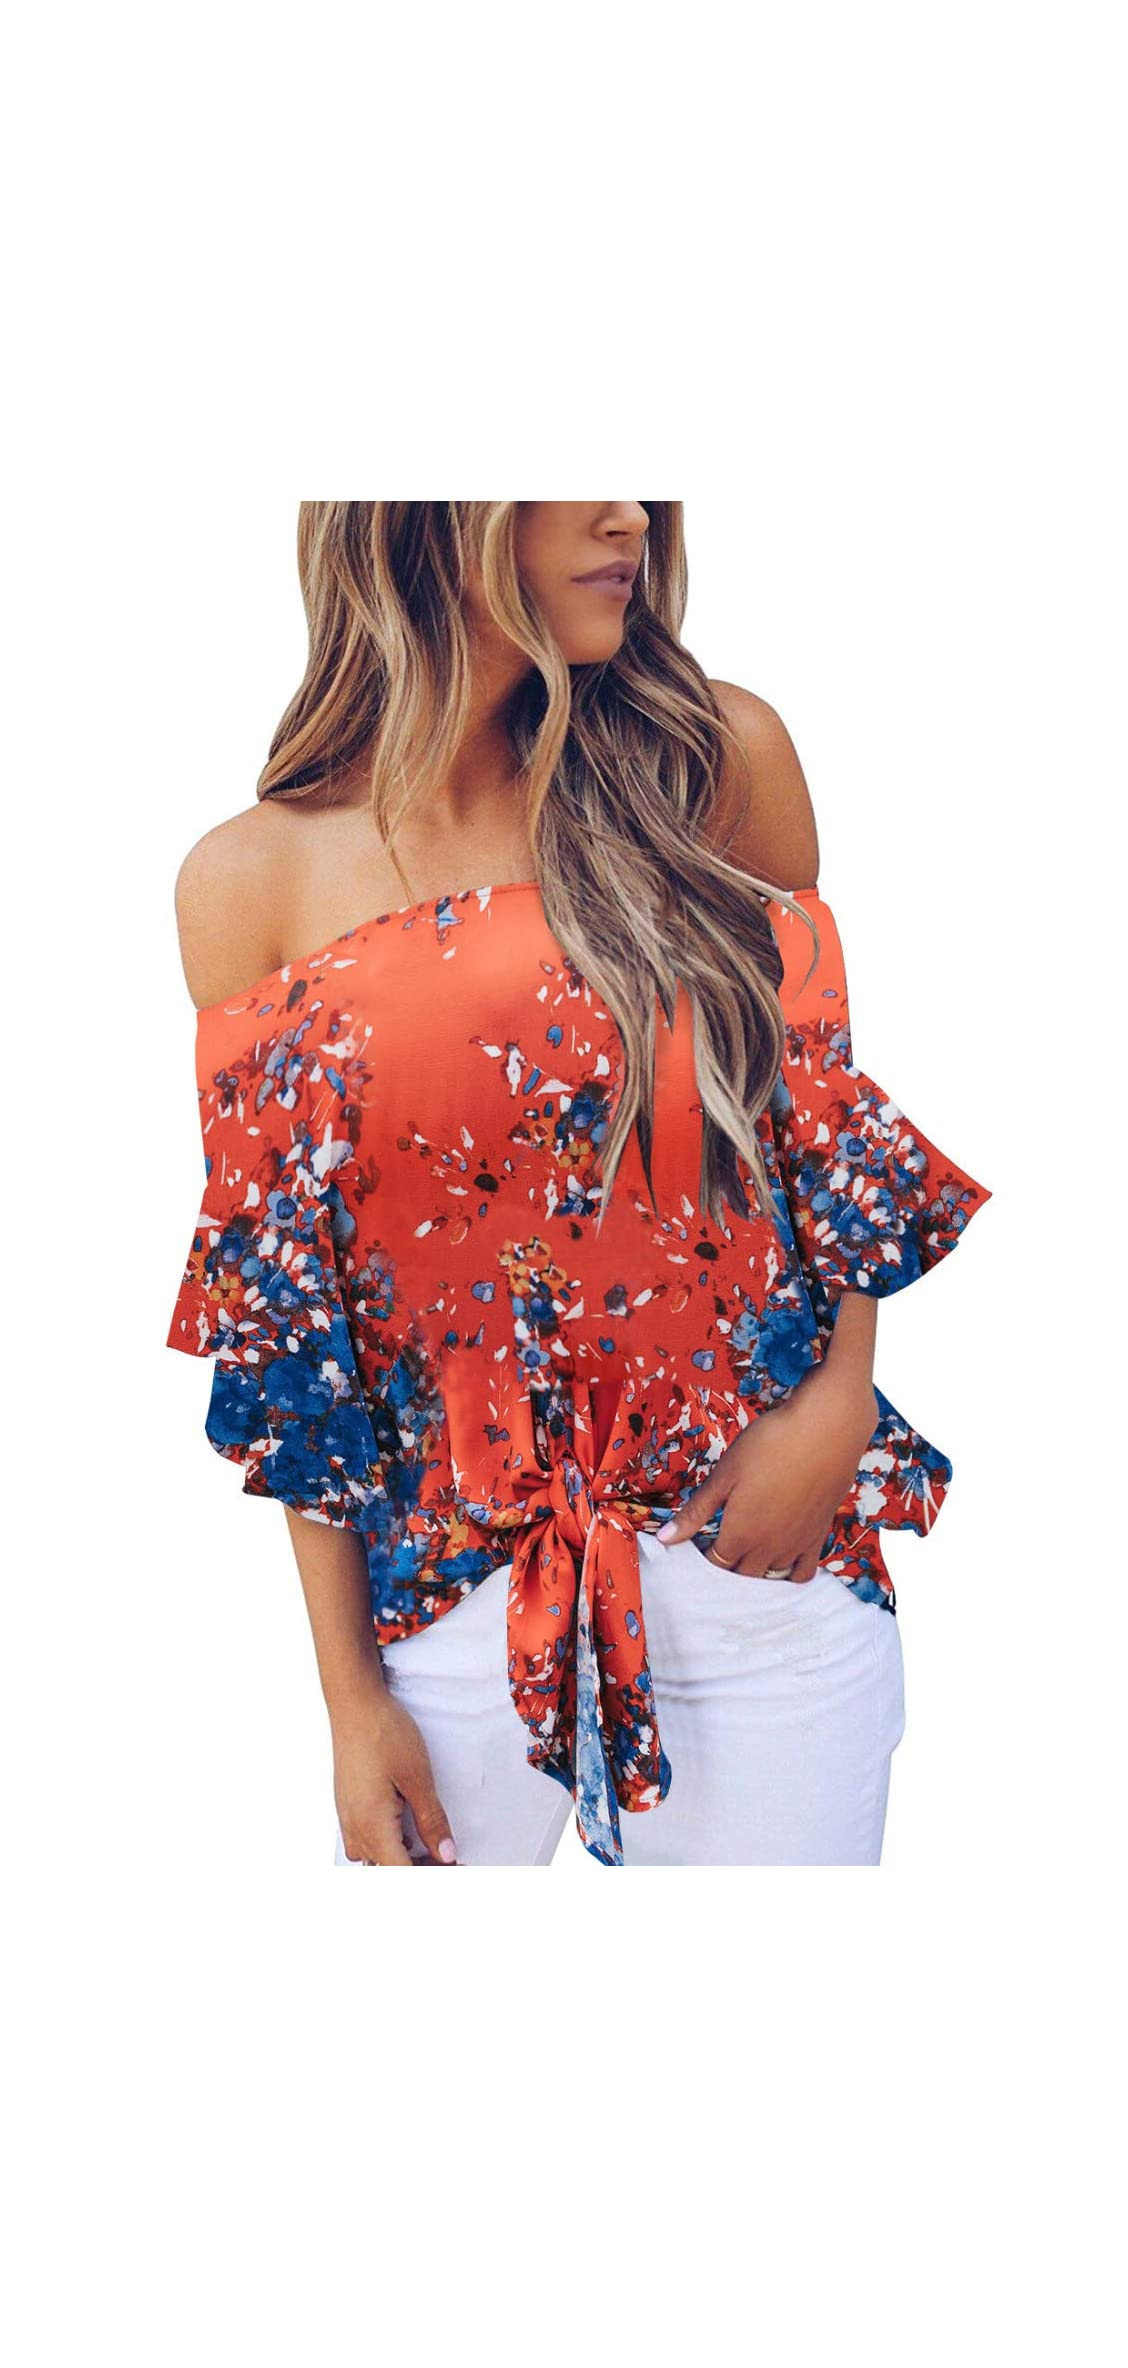 Womens Off The Shoulder Tops Foral Summer Bell Sleeve Tie Front